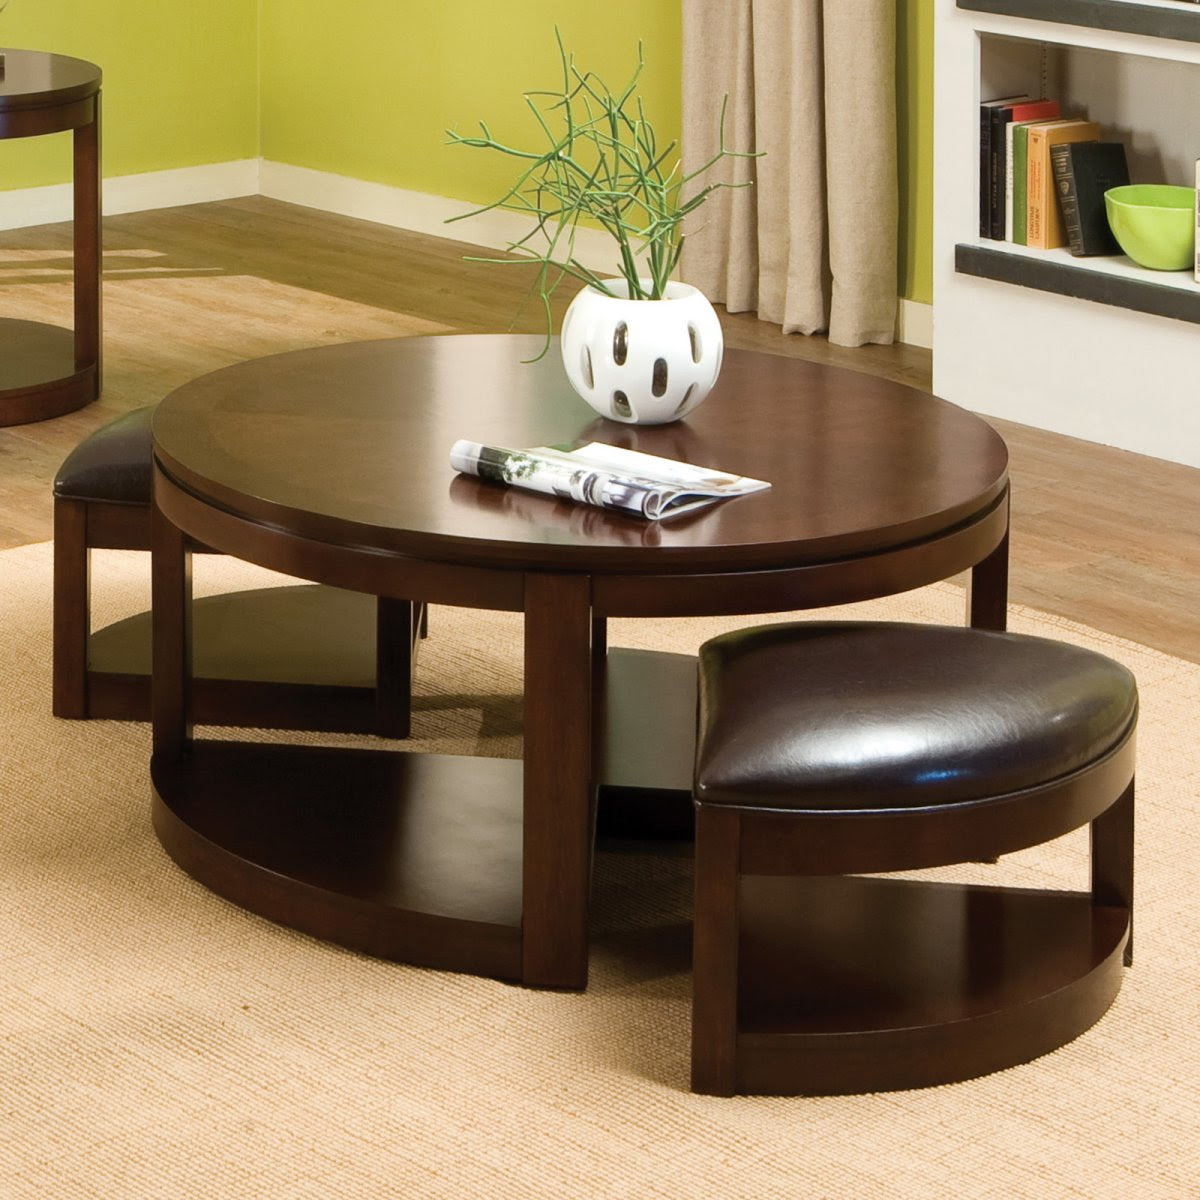 The Round Coffee Tables with Storage - the Simple and ...